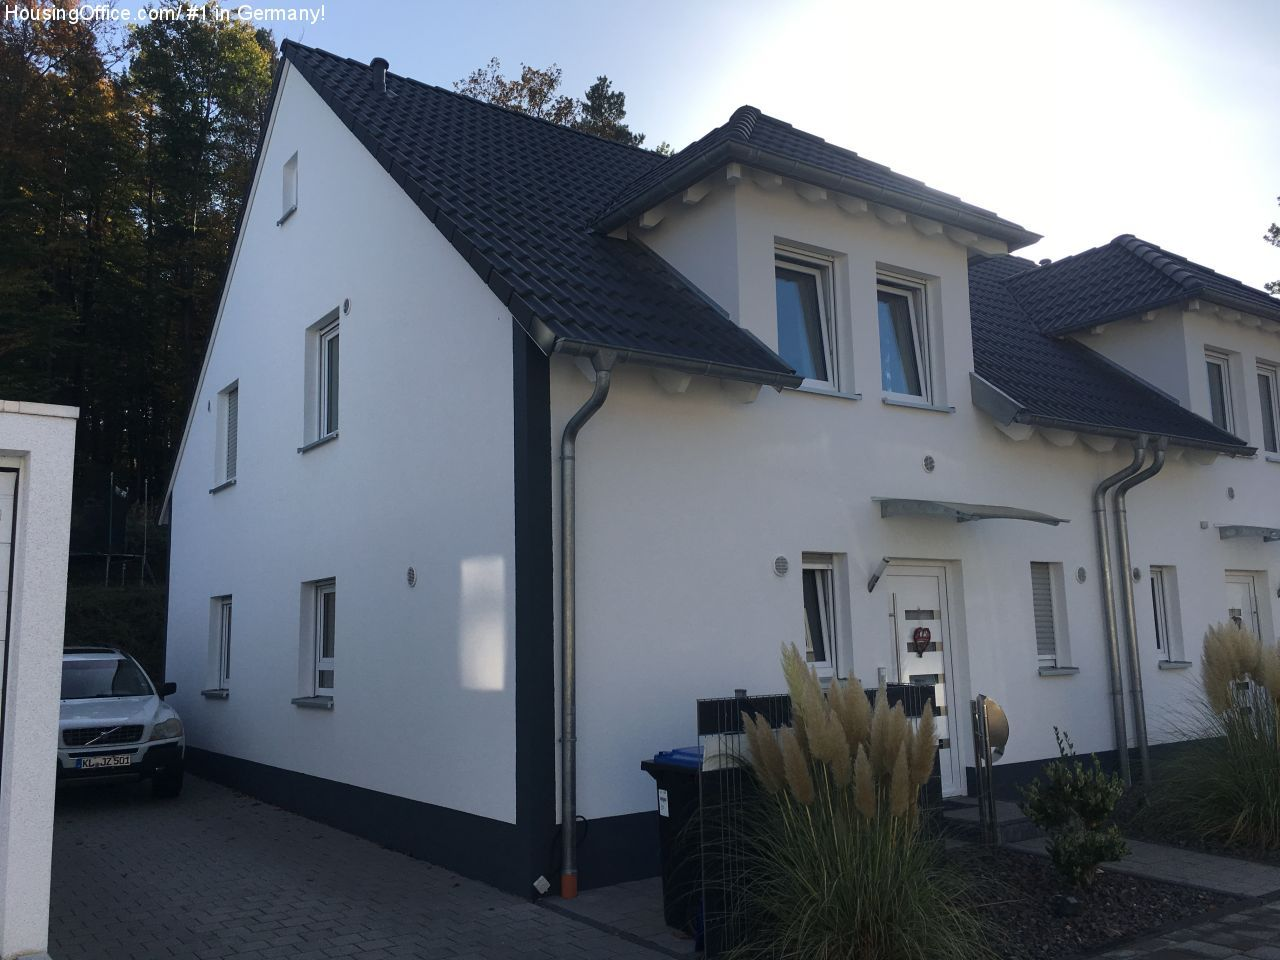 Küchendesign für bungalowhaus tlatdy homes for rent in germany  house in   pinterest